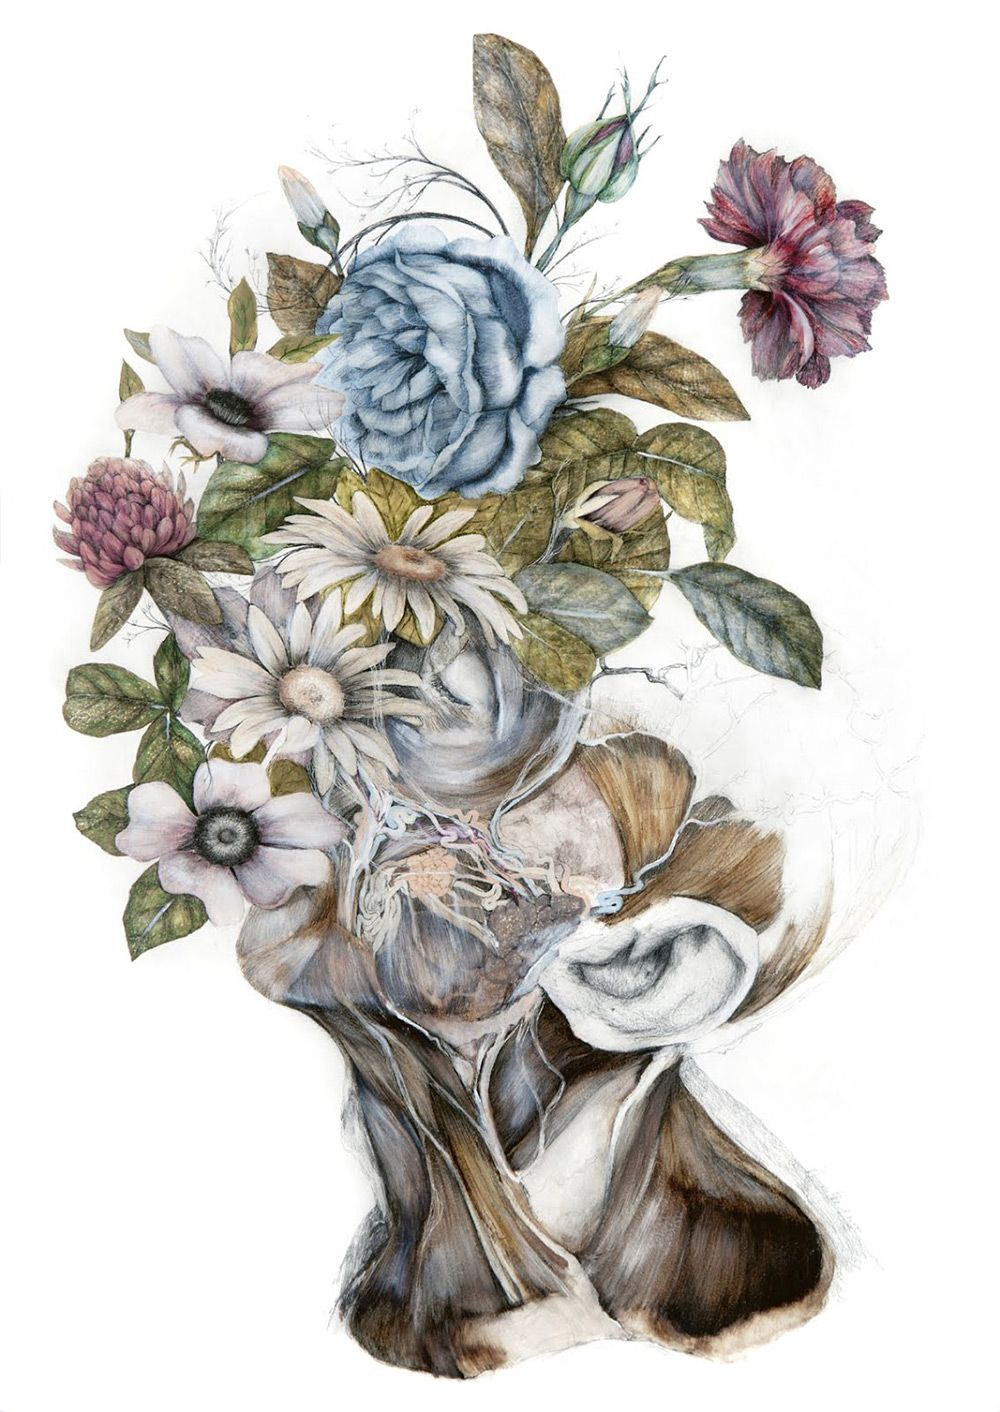 Mimesis new anatomical paintings depicting flora and fauna by